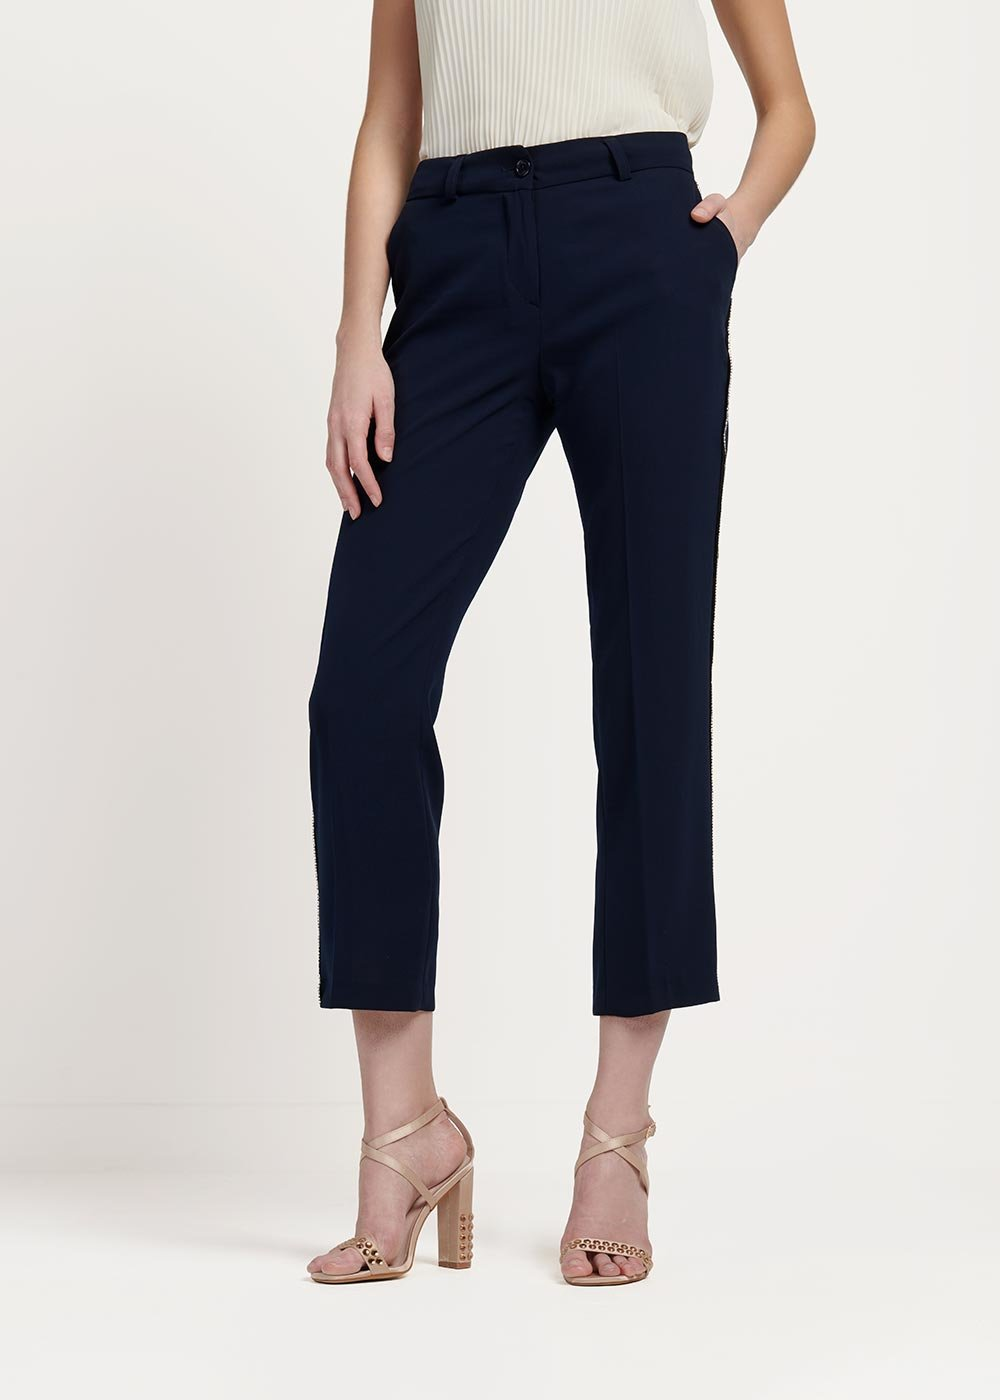 Phillis palazzo pants with side rhinestone trimming - Medium Blue - Woman